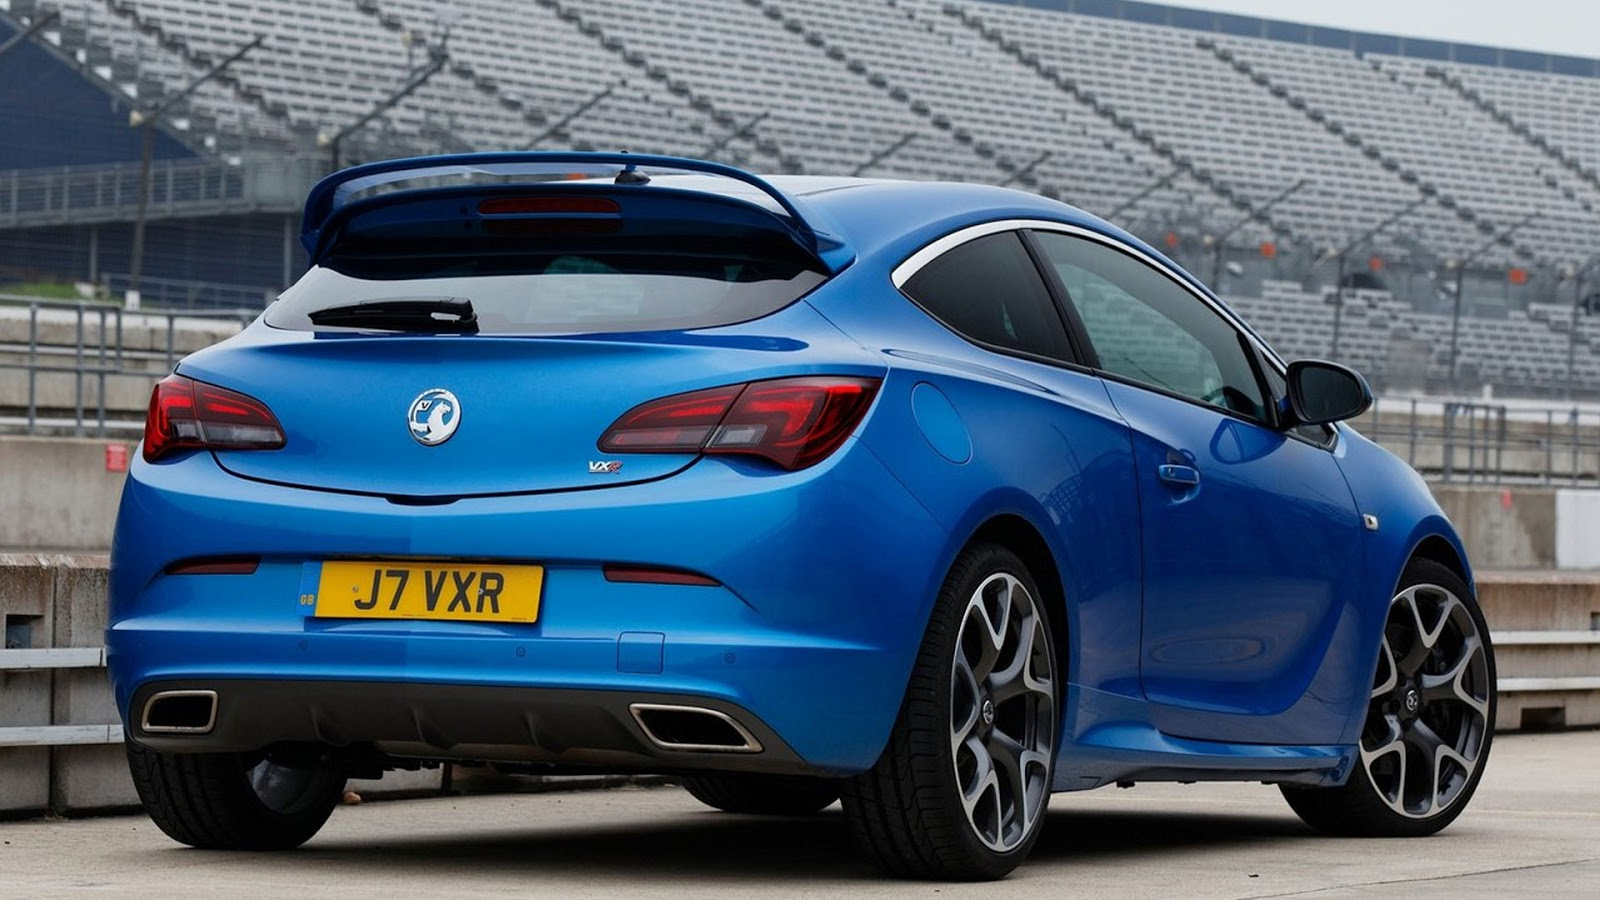 2013 vauxhall astra vxr fast speedy cars. Black Bedroom Furniture Sets. Home Design Ideas